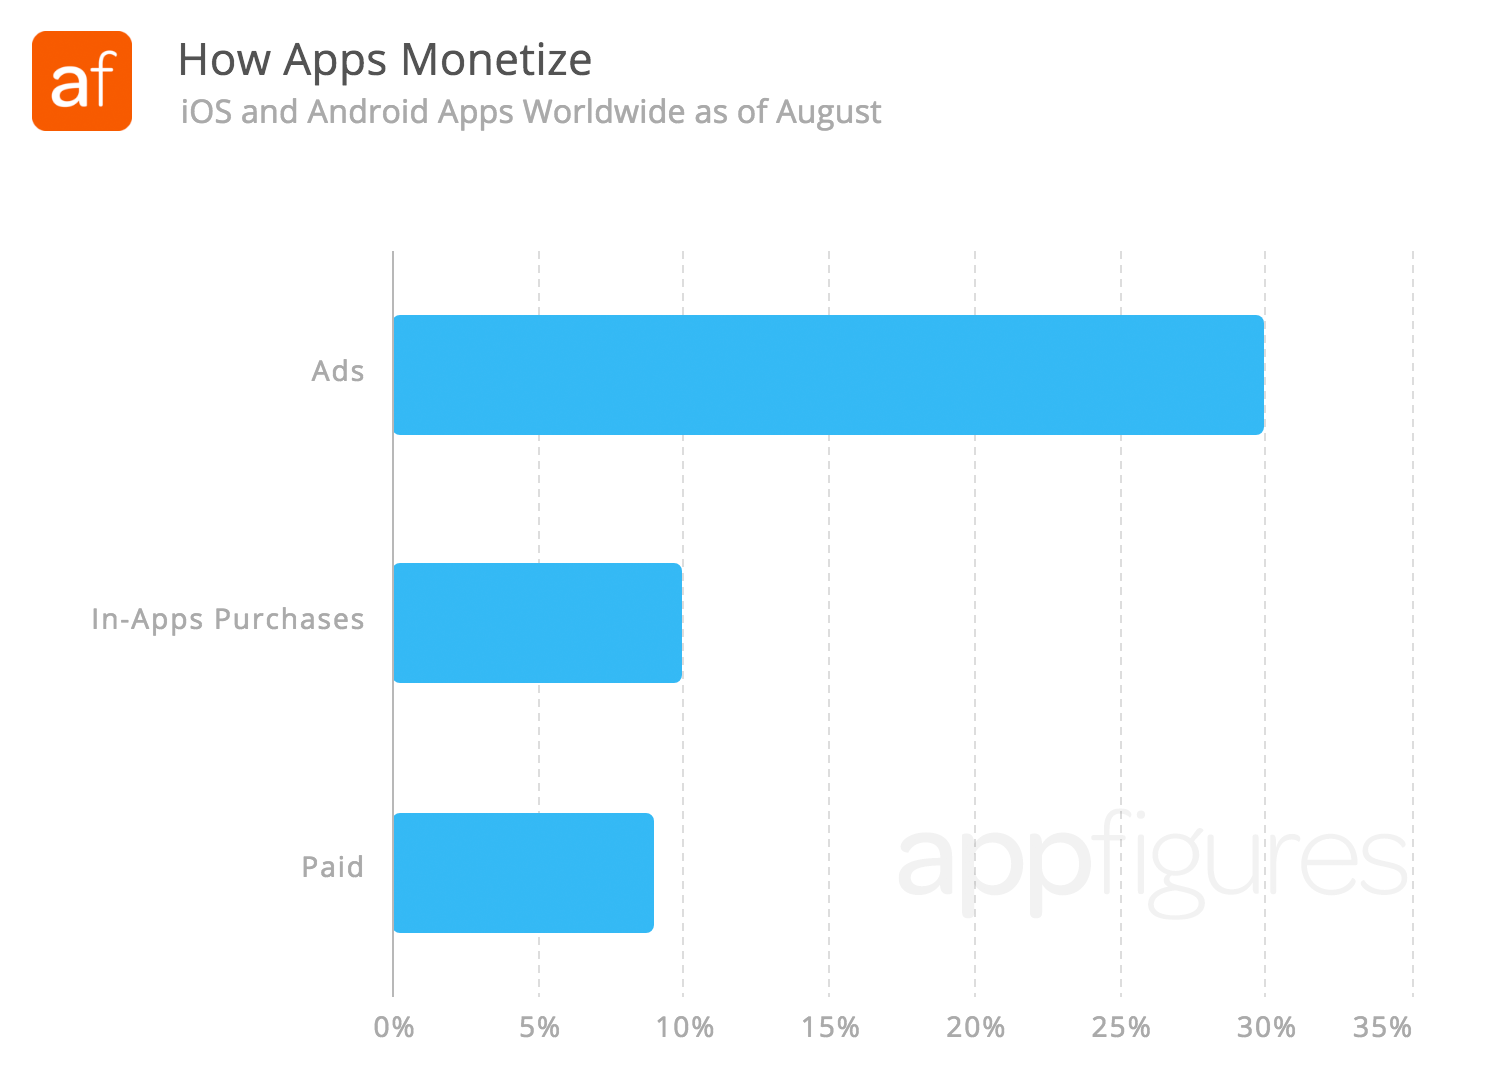 11% of all free iOS and Android apps monetize with in-app purchases. Half of those are Games.